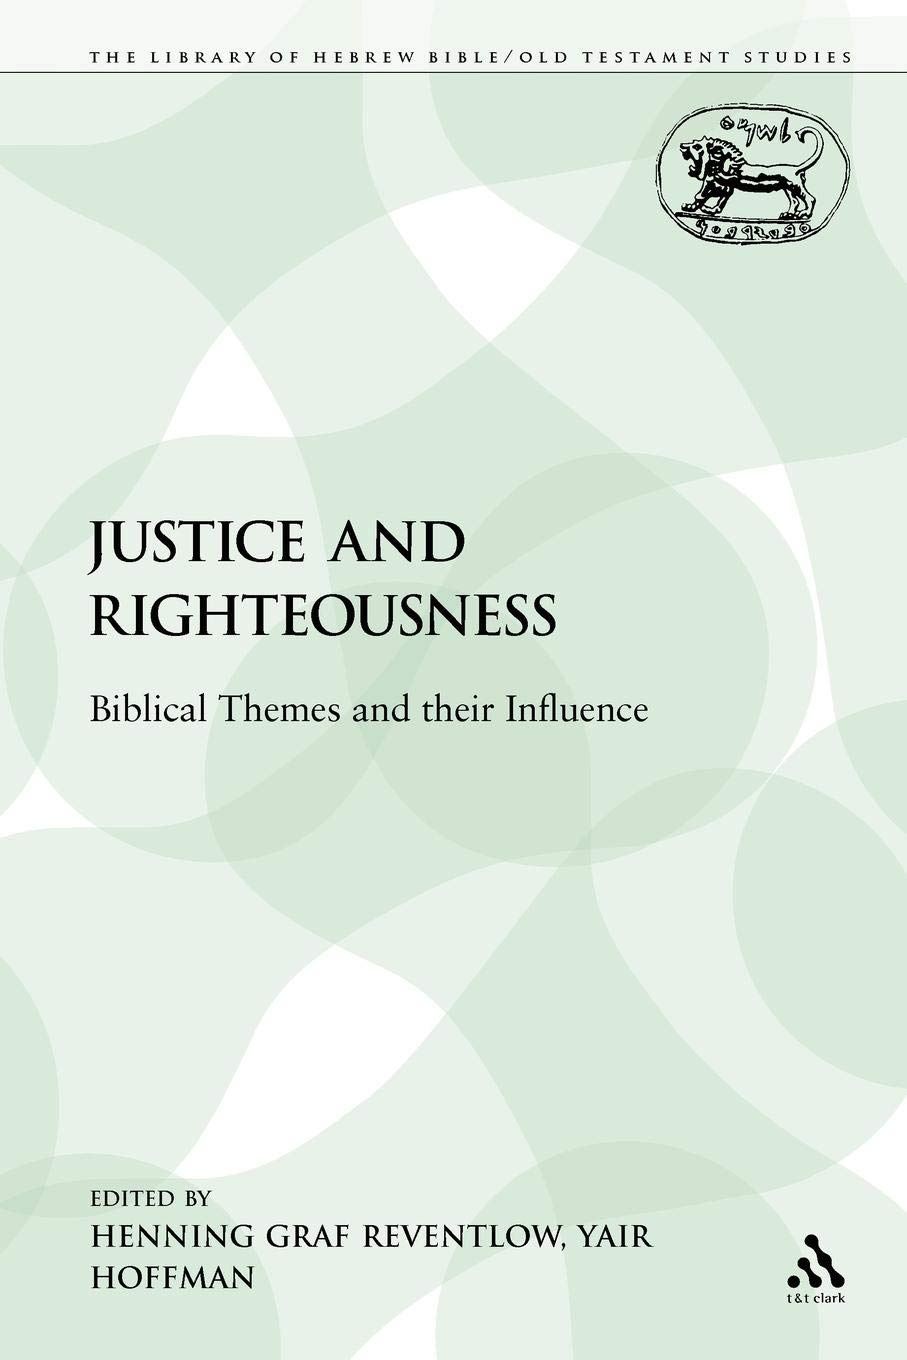 ARE FREEDOM AND EQUALITY NATURAL ENEMIES? A CHRISTIAN‐THEOLOGICAL PERSPECTIVE